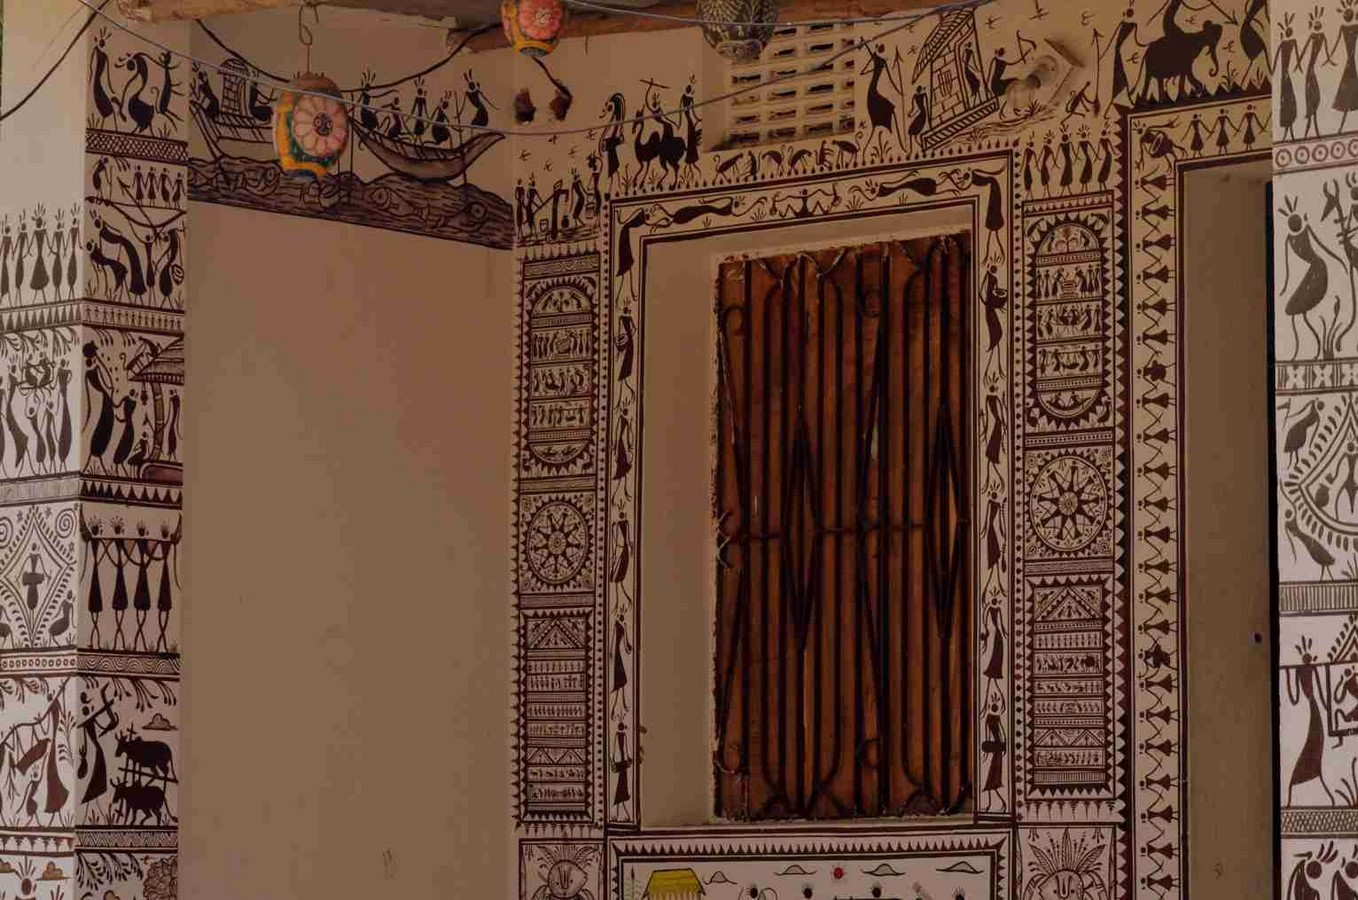 10 Inspirational Indian Mural Architecture - Sheet8